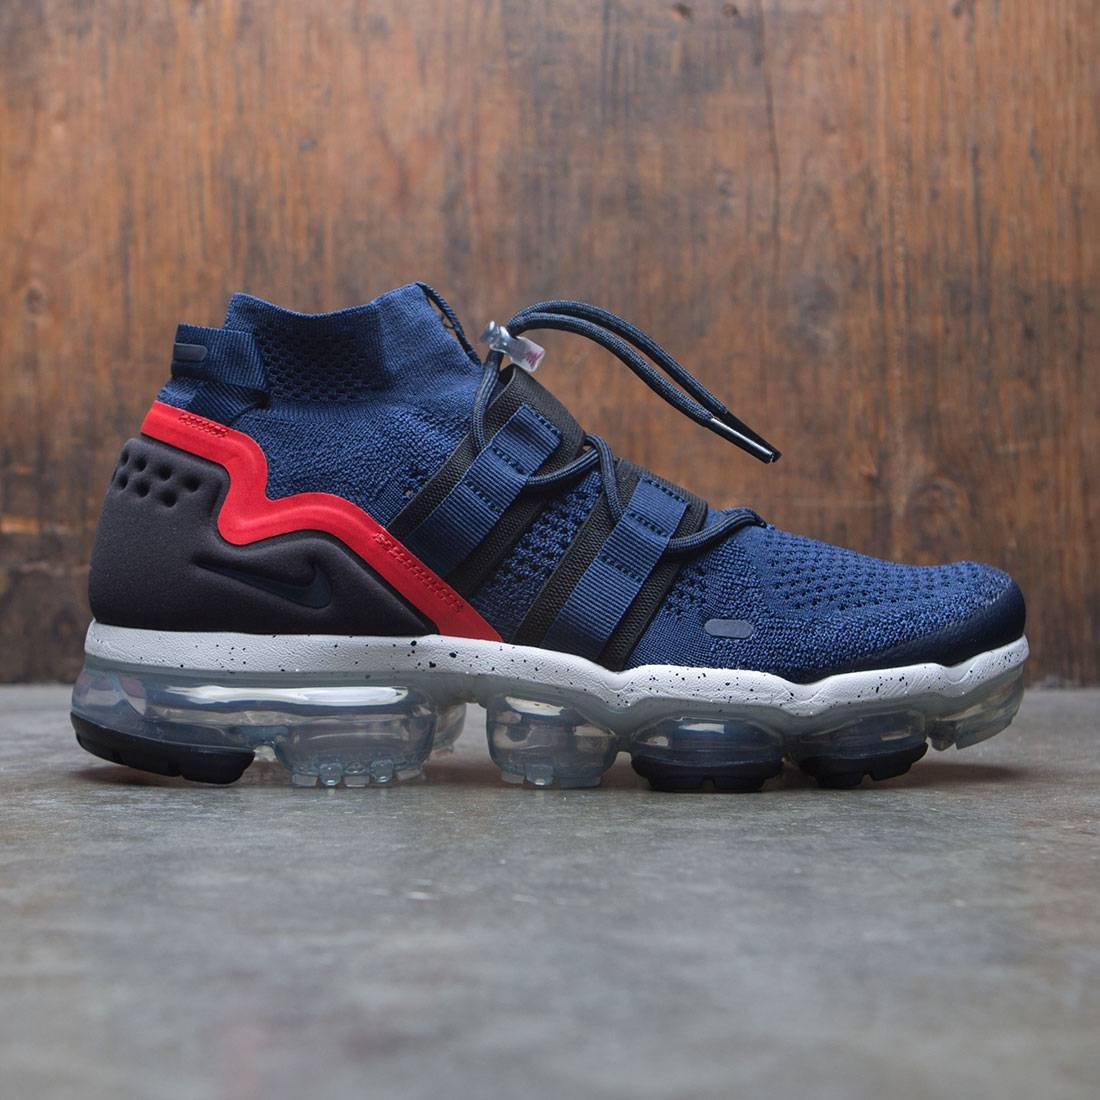 finest selection 5bc80 7641d Nike Men Air Vapormax Fk Utility (college navy / black-habanero red)